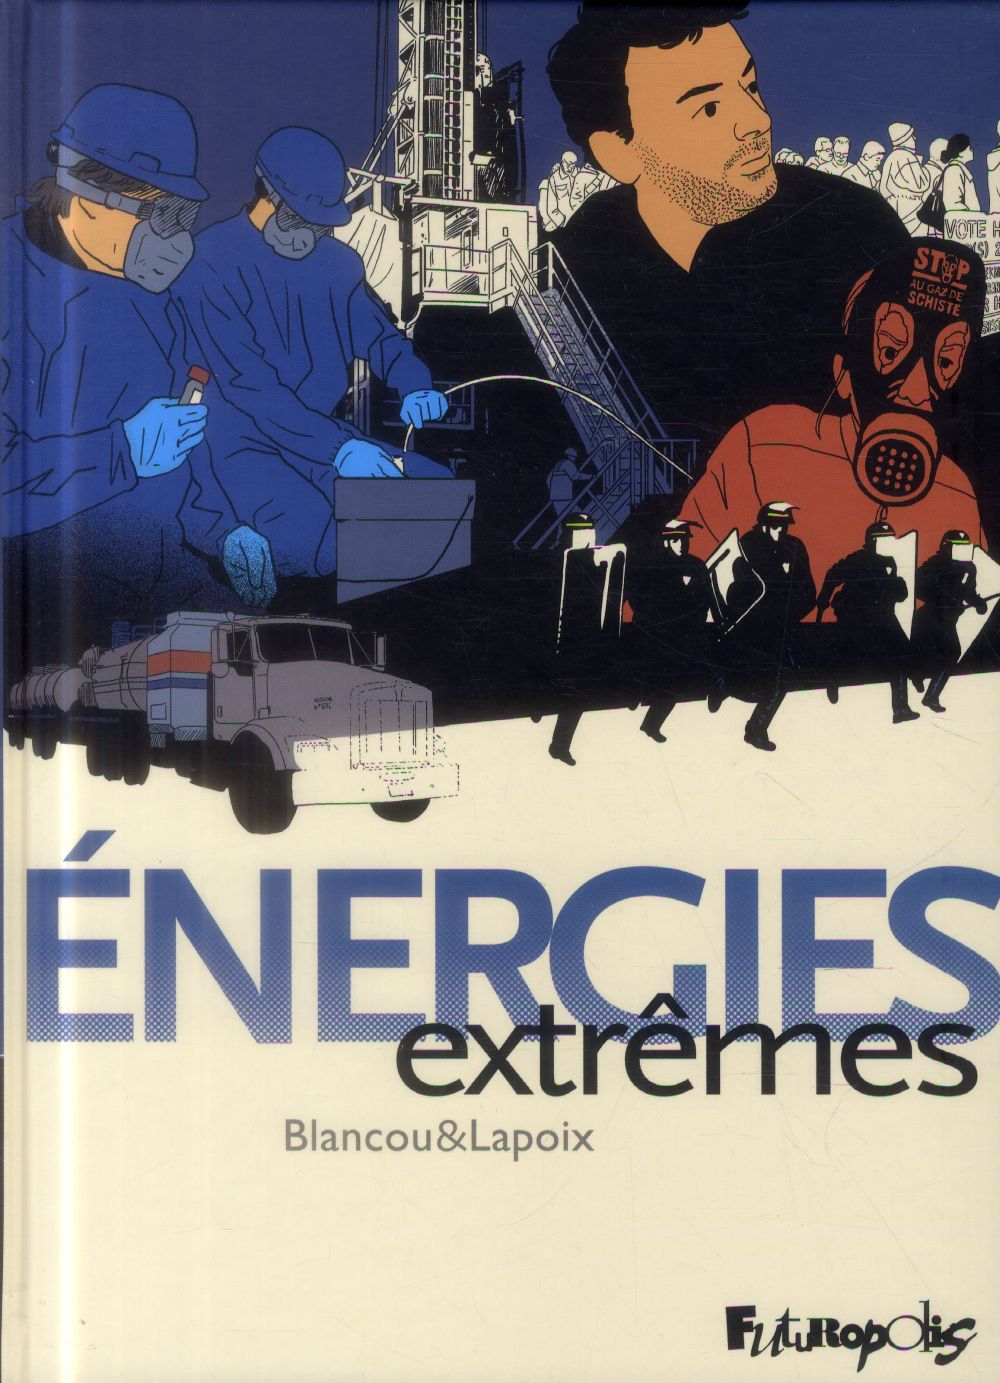 Energies extremes